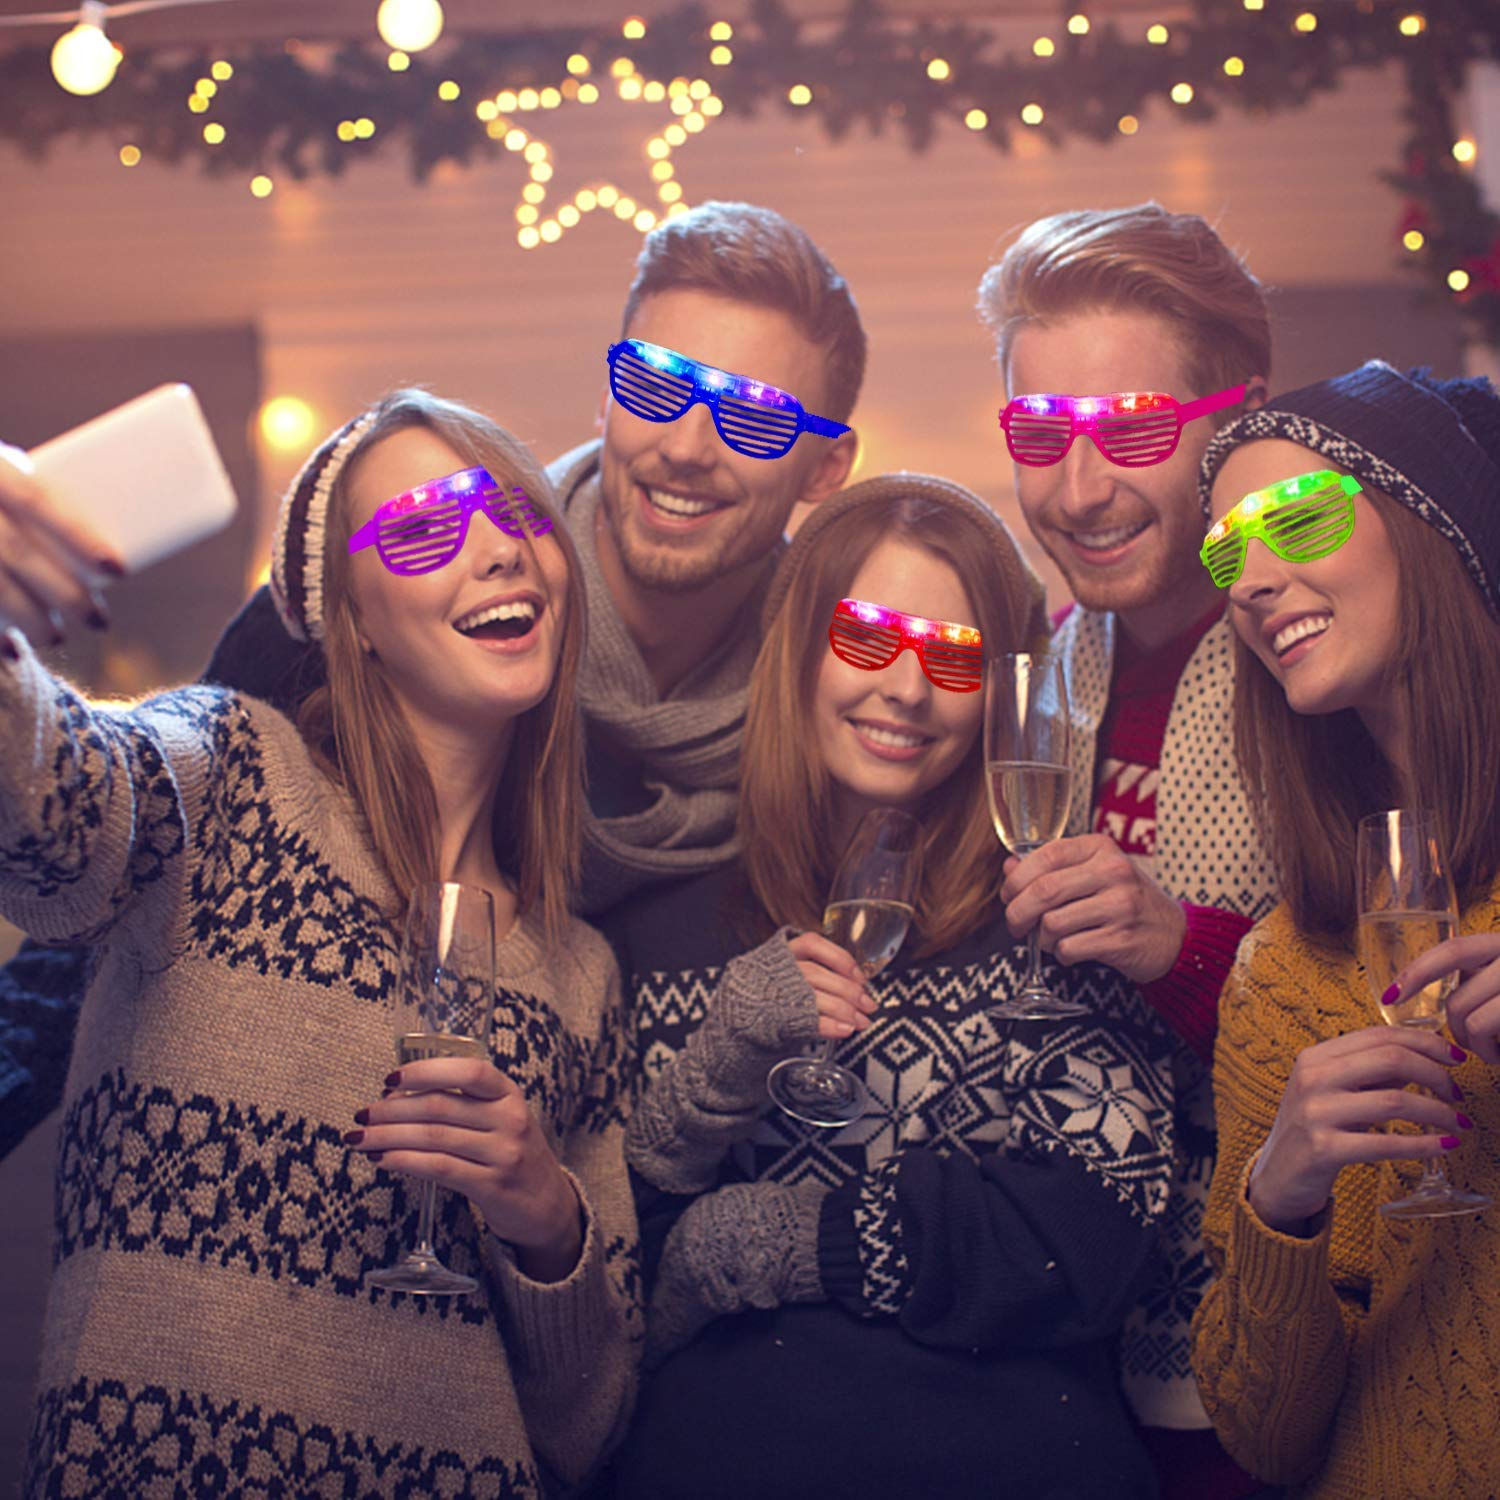 TURNMEON 20 Pack LED Glasses,5 Color Light Up Plastic Shutter Shades Glasses Shades Sunglasses for Adults Kids Glow in the Dark Party Favors Neon Party Supplies Independence Day Glow Toy by TURNMEON (Image #6)